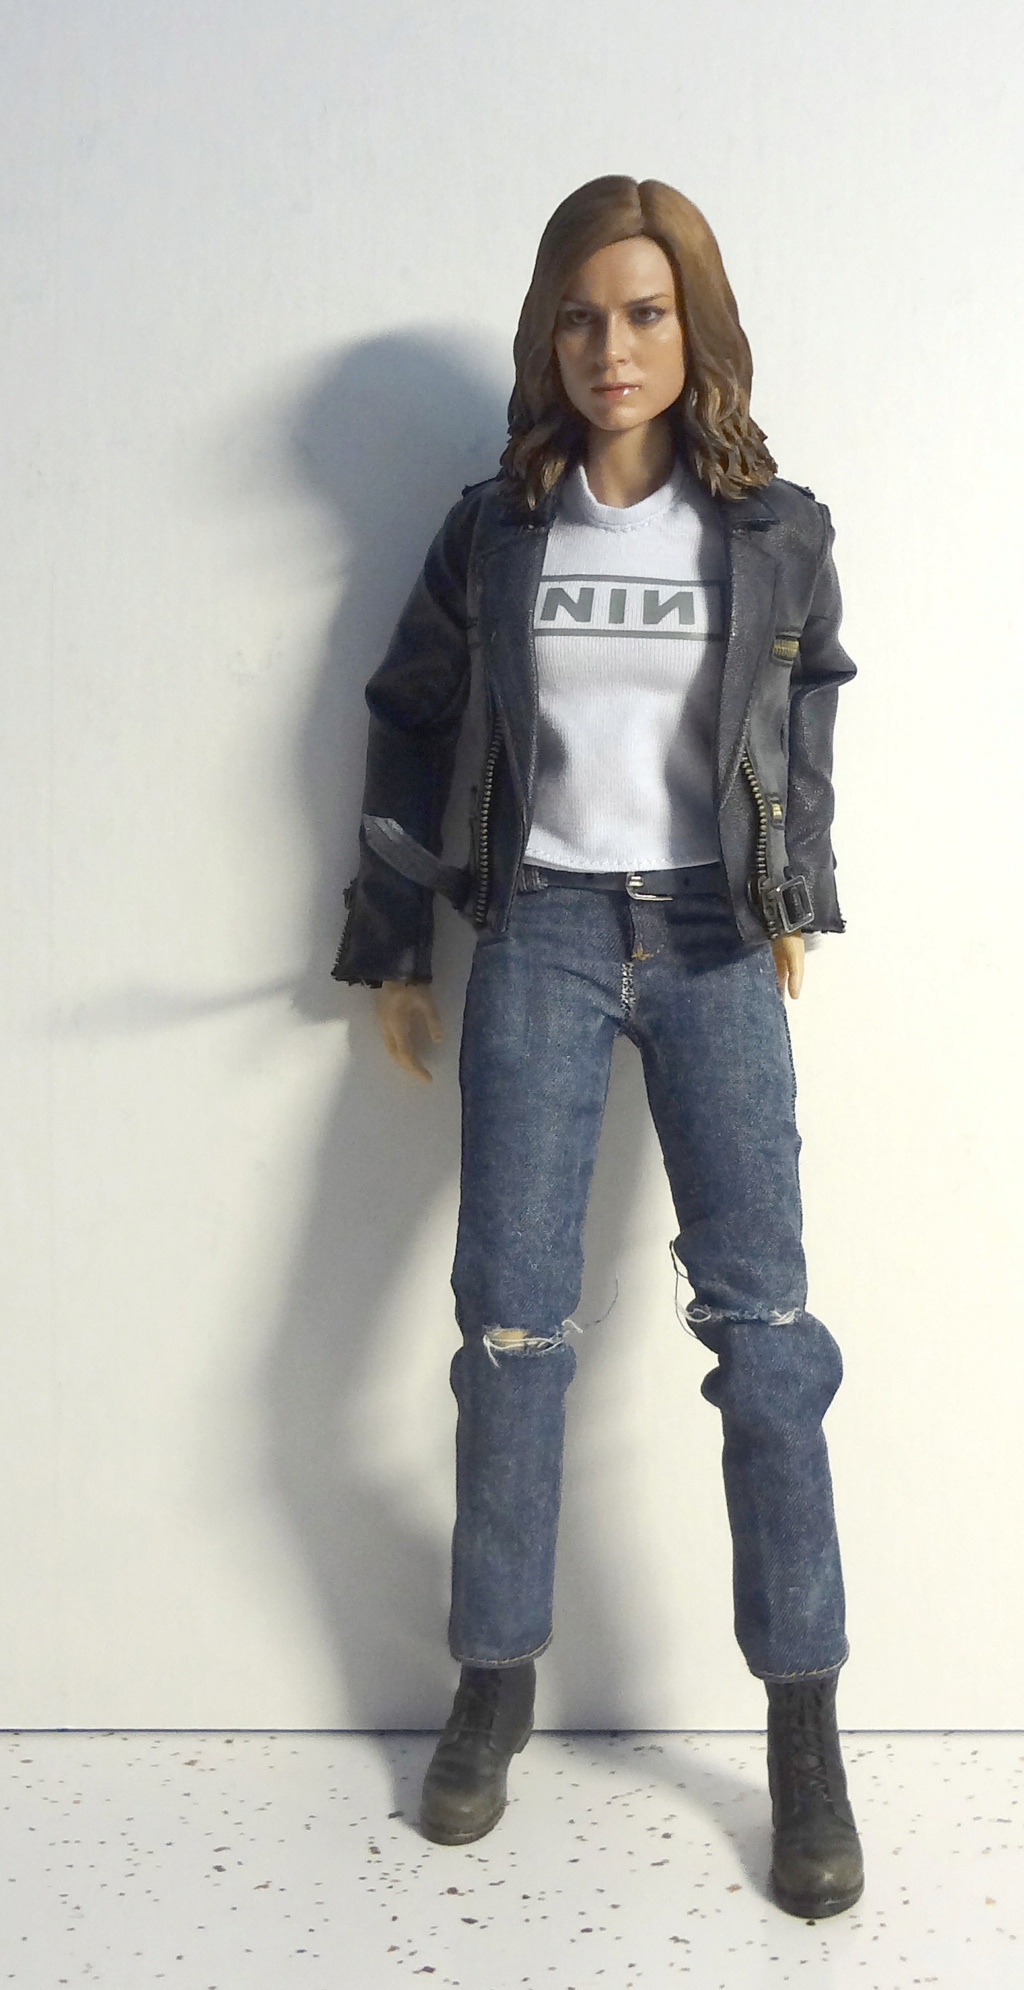 SWToys - NEW PRODUCT: Swtoys FS028 1/6 Scale Danvers figure Dsc00921